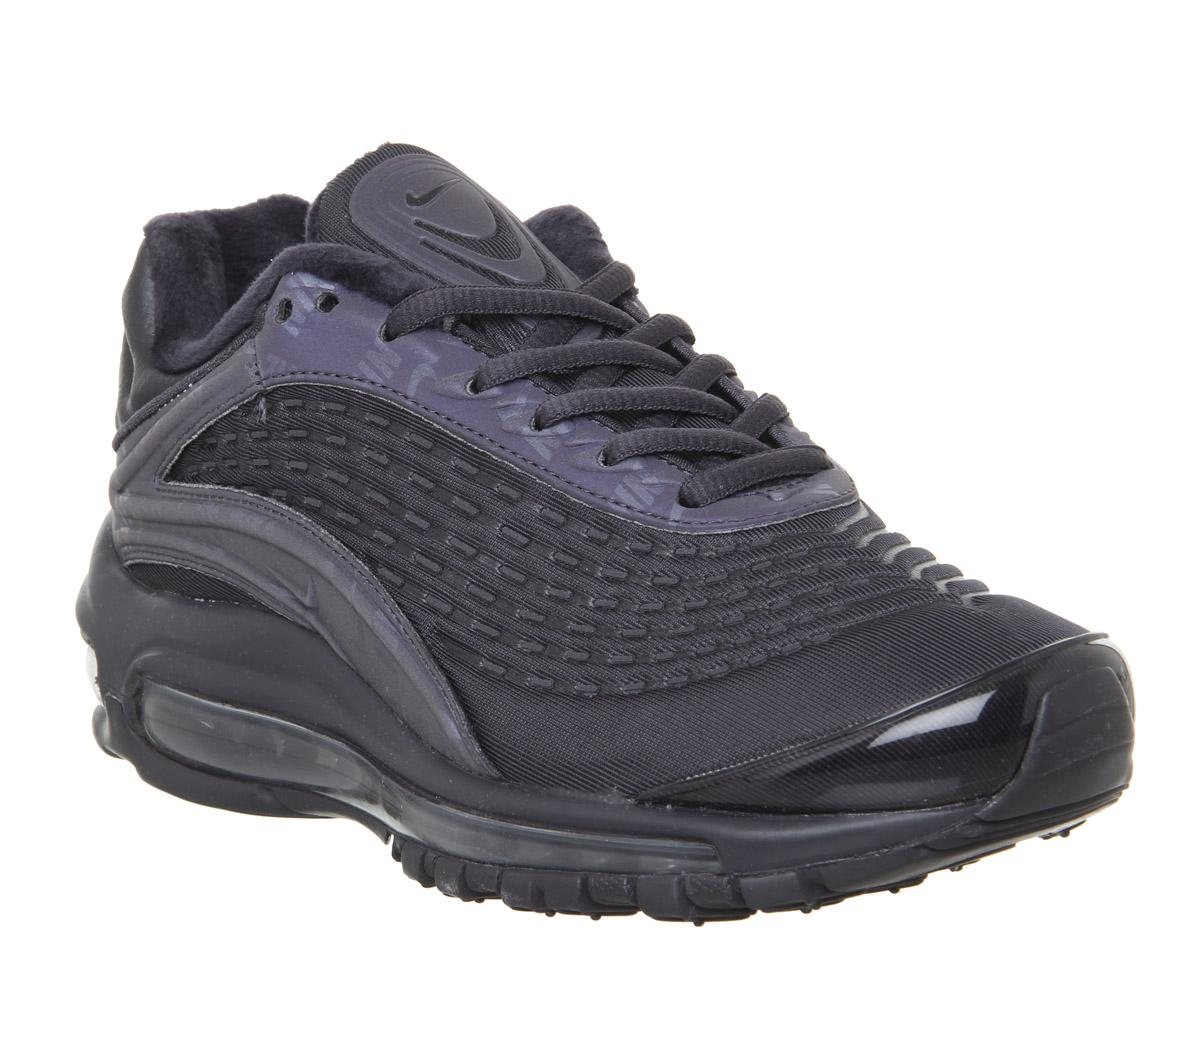 Nike Air Max Deluxe Trainers Oil Grey